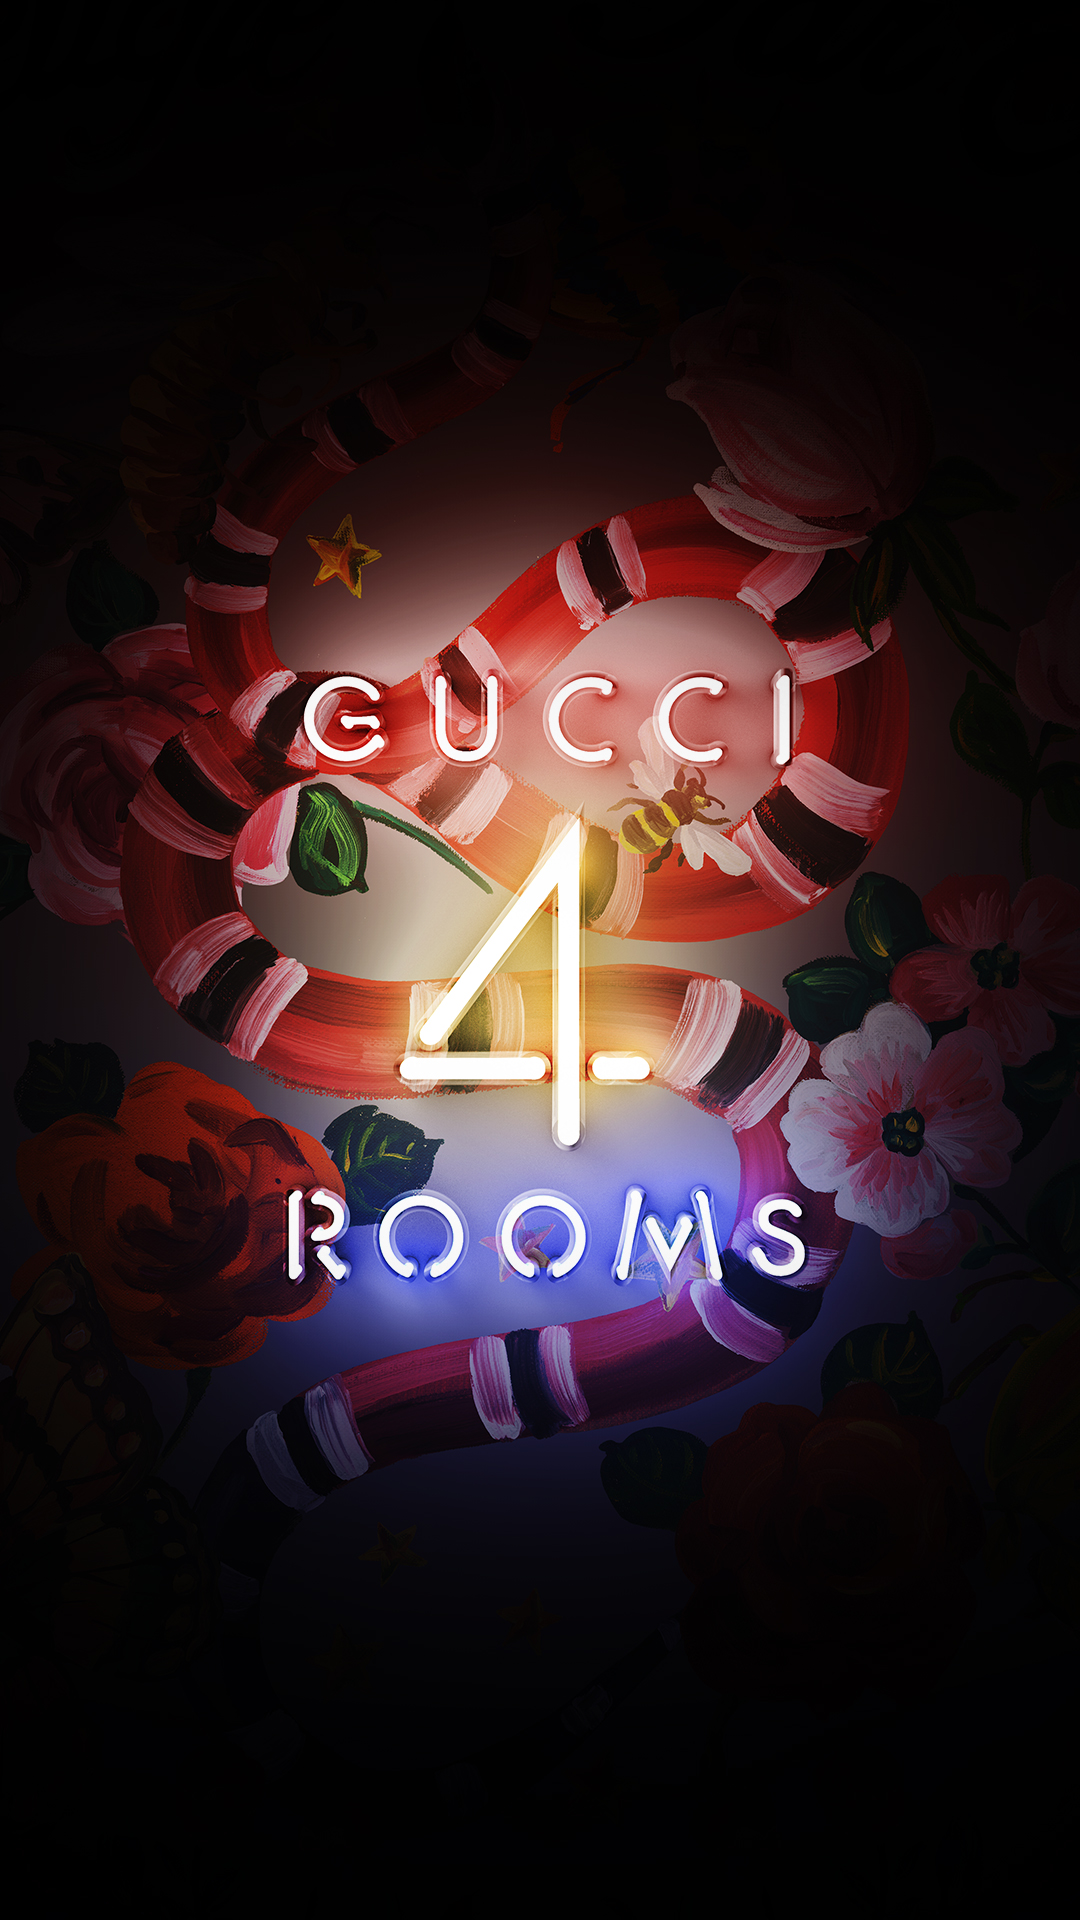 Graffiti Wallpaper 3d Hd Gucci 4 Rooms Wallpapers Gucci Official Site United States